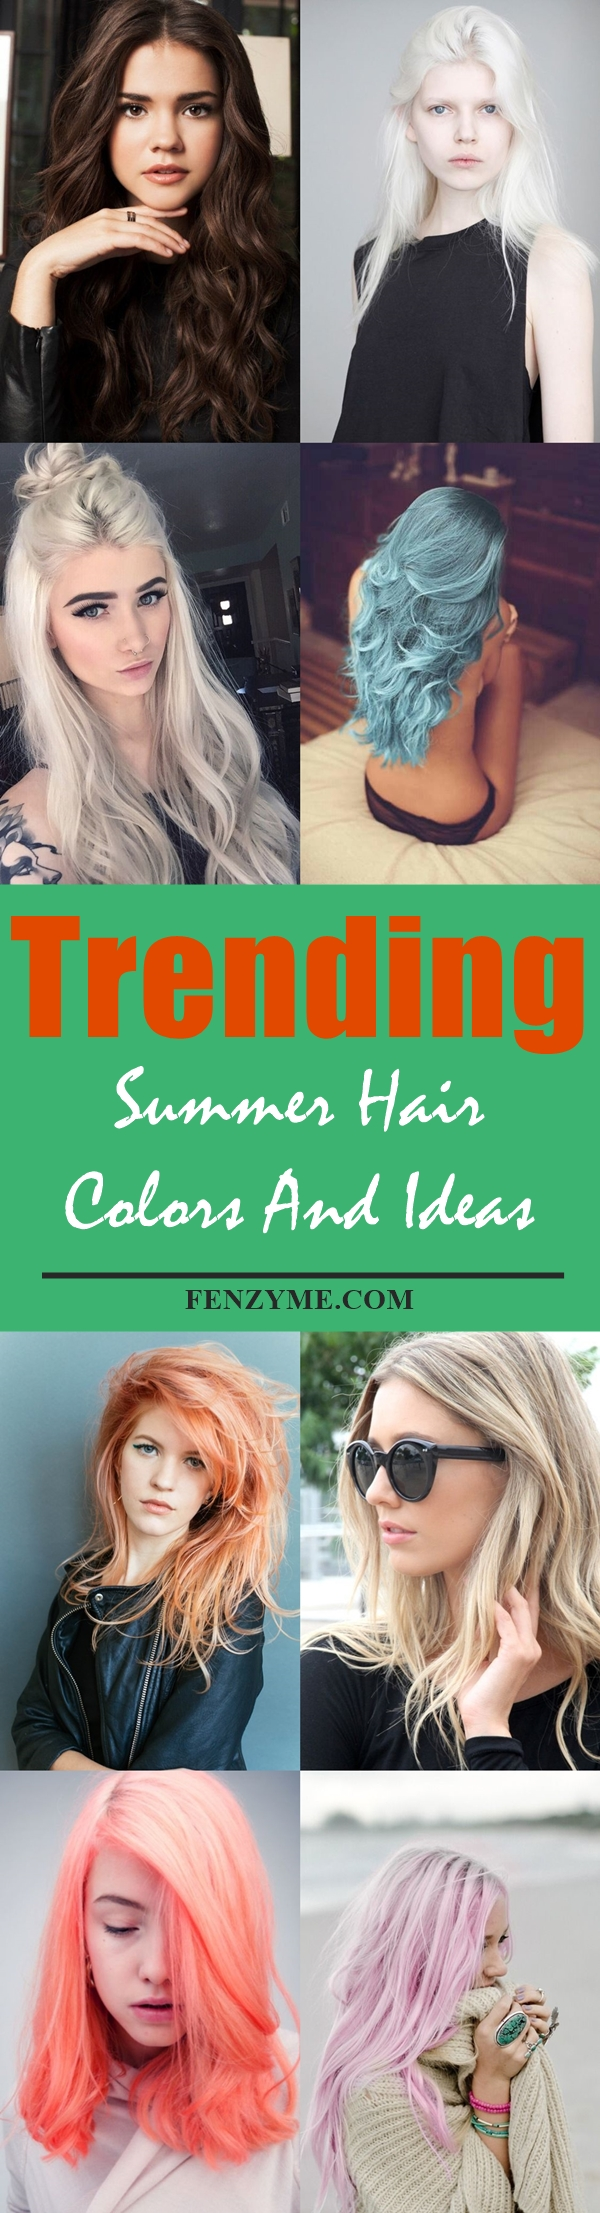 9 Trending Summer Hair Colors And Ideas For 2017